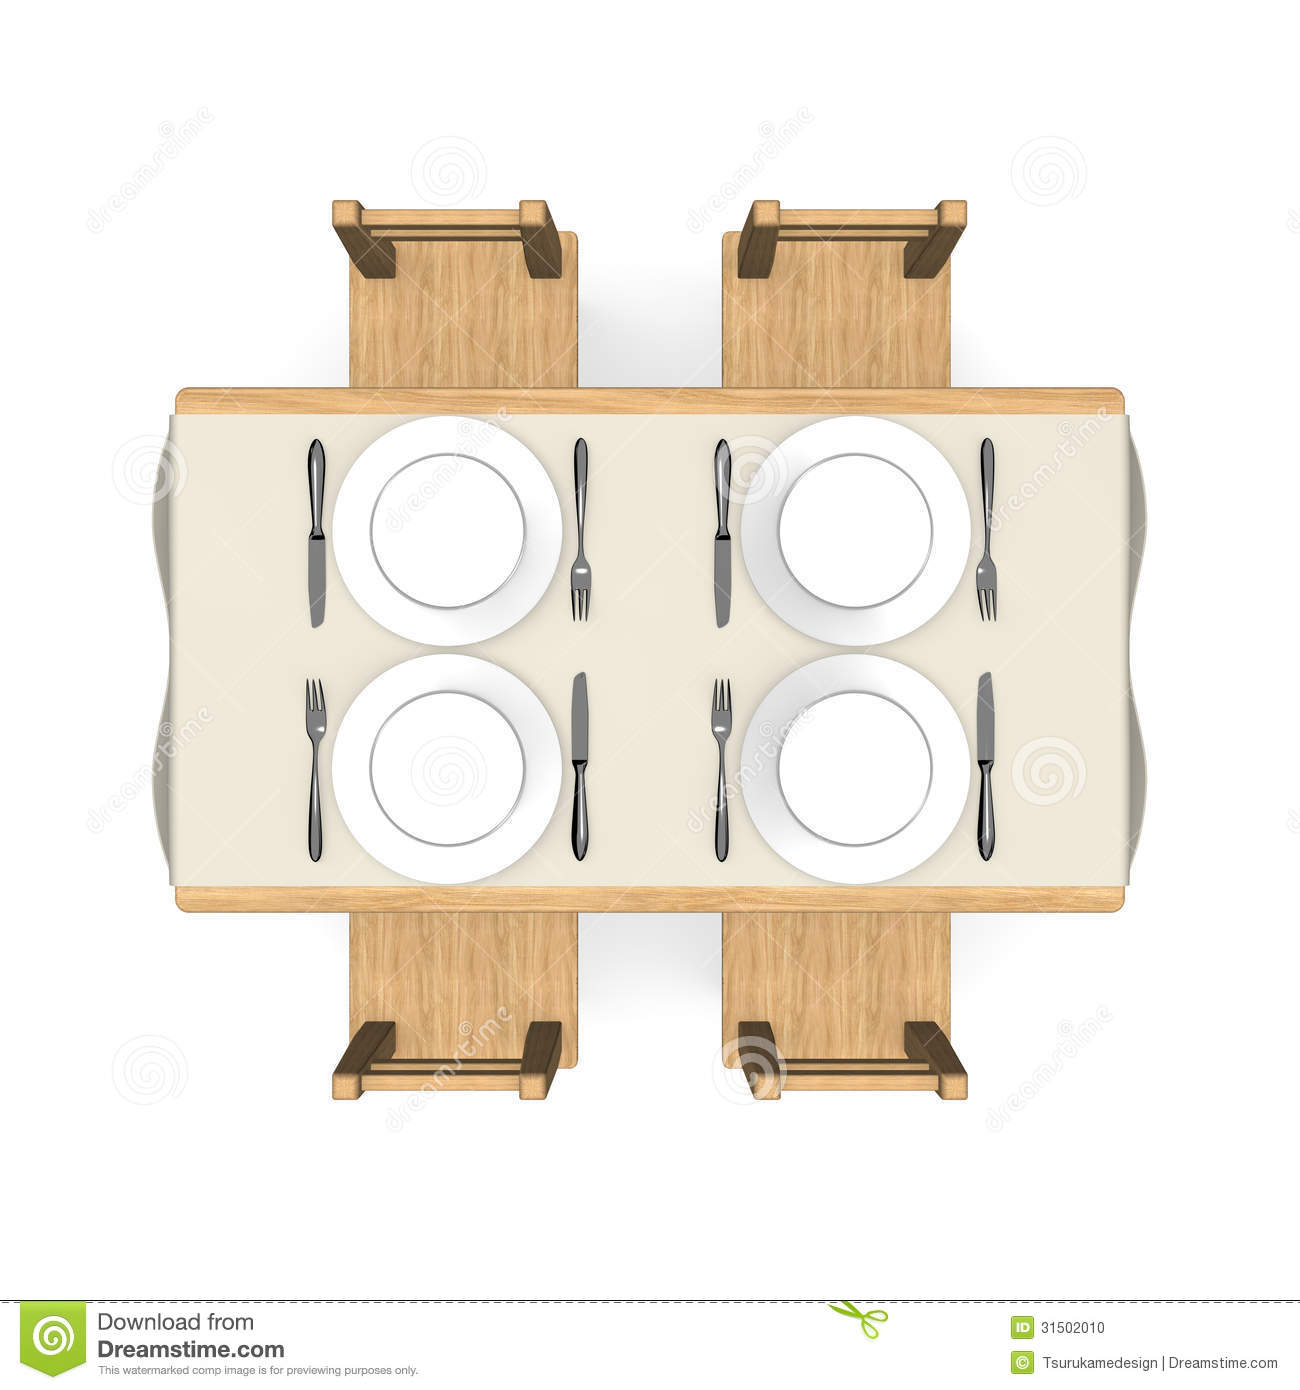 Big W Outdoor Table And Chairs Cutlery On Wooden Dining Table Top View Stock Illustration